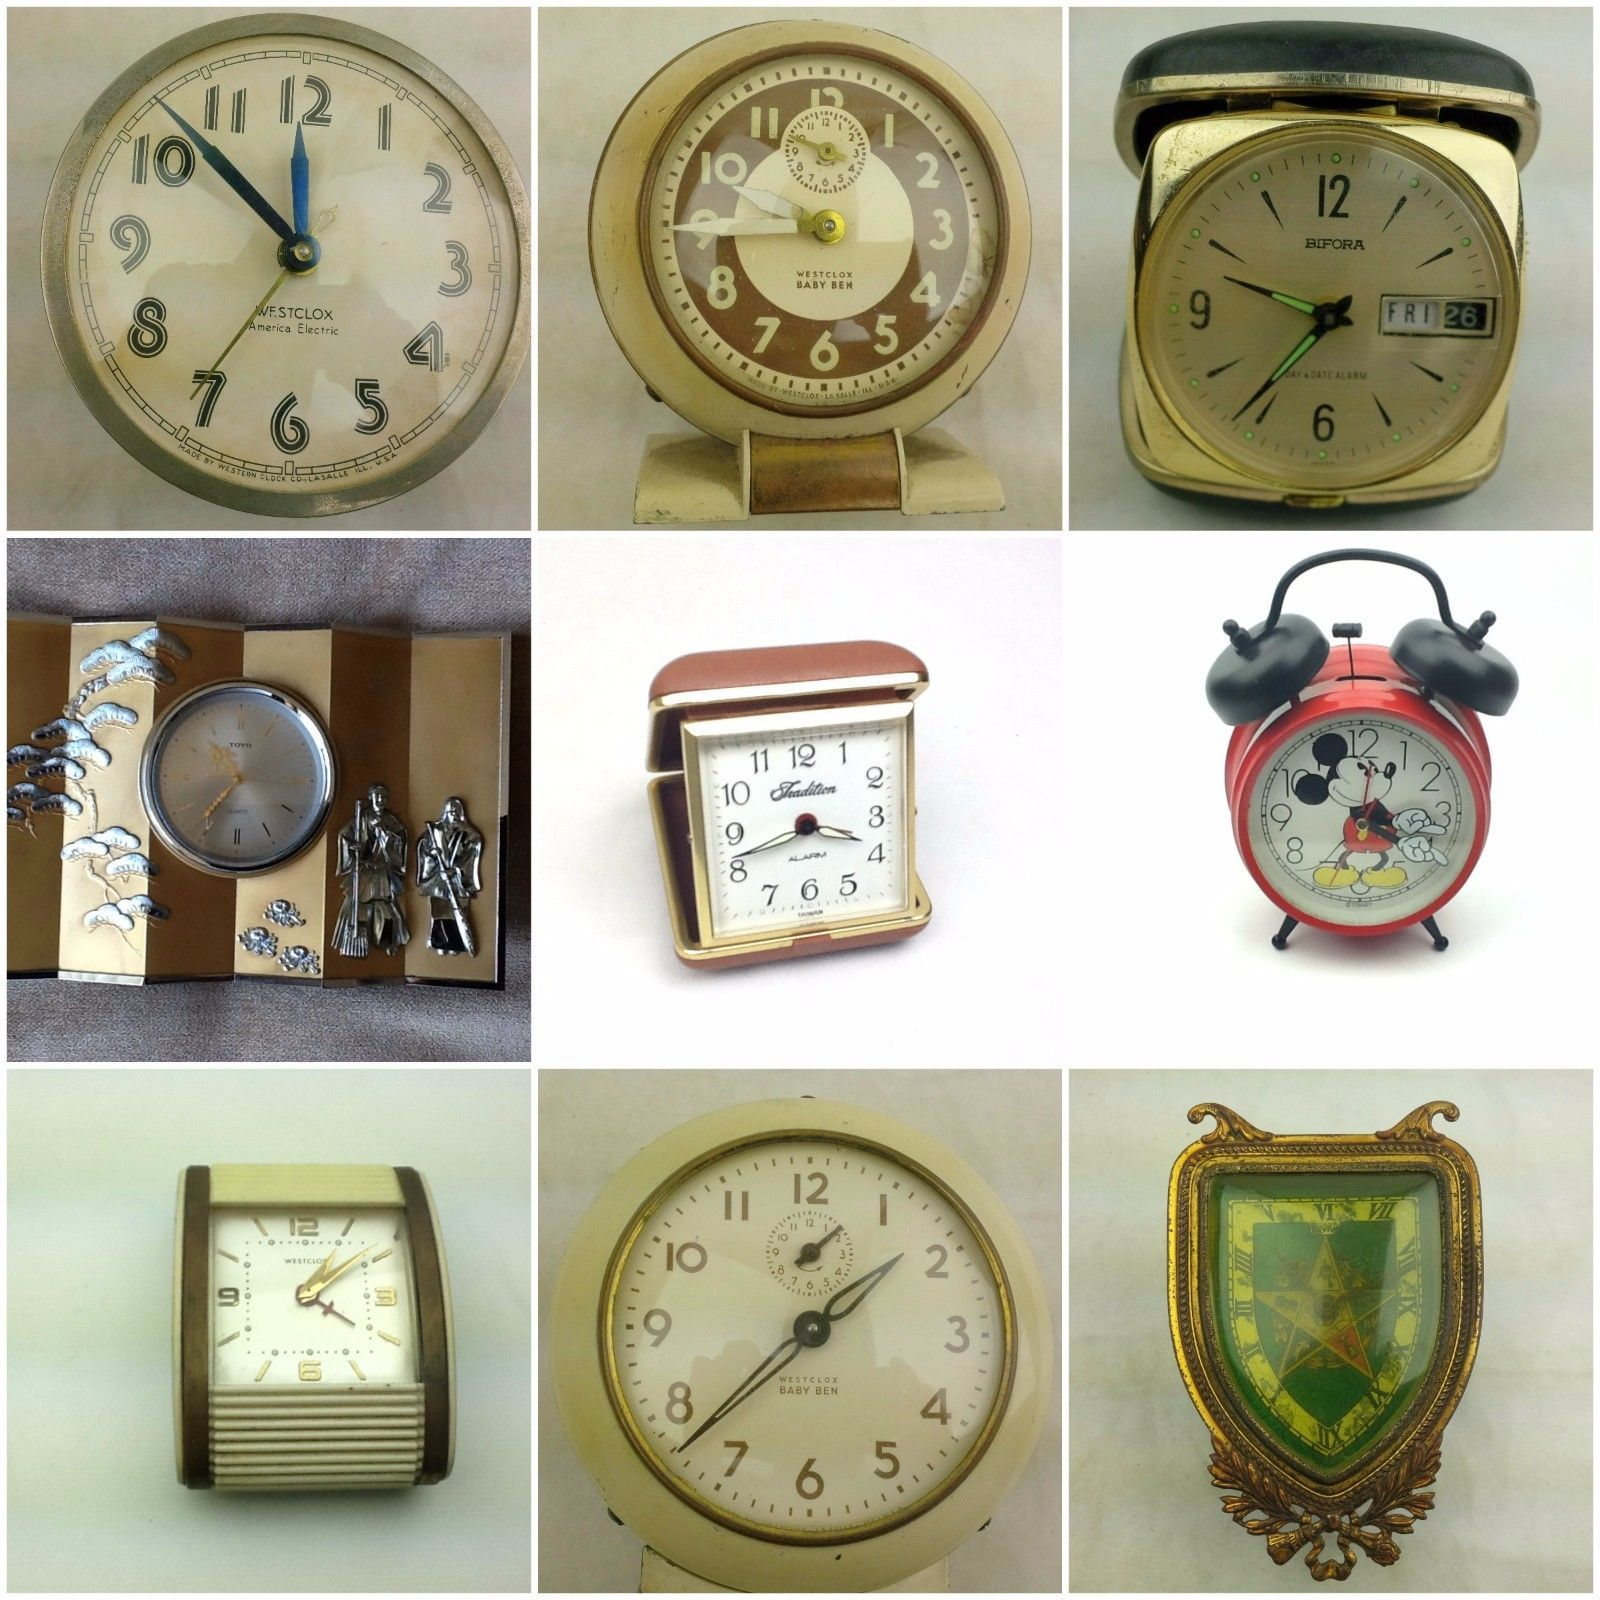 Clocks Travel Wind-Up Alarm Westclox Used Vintage Repair Parts Home Decor